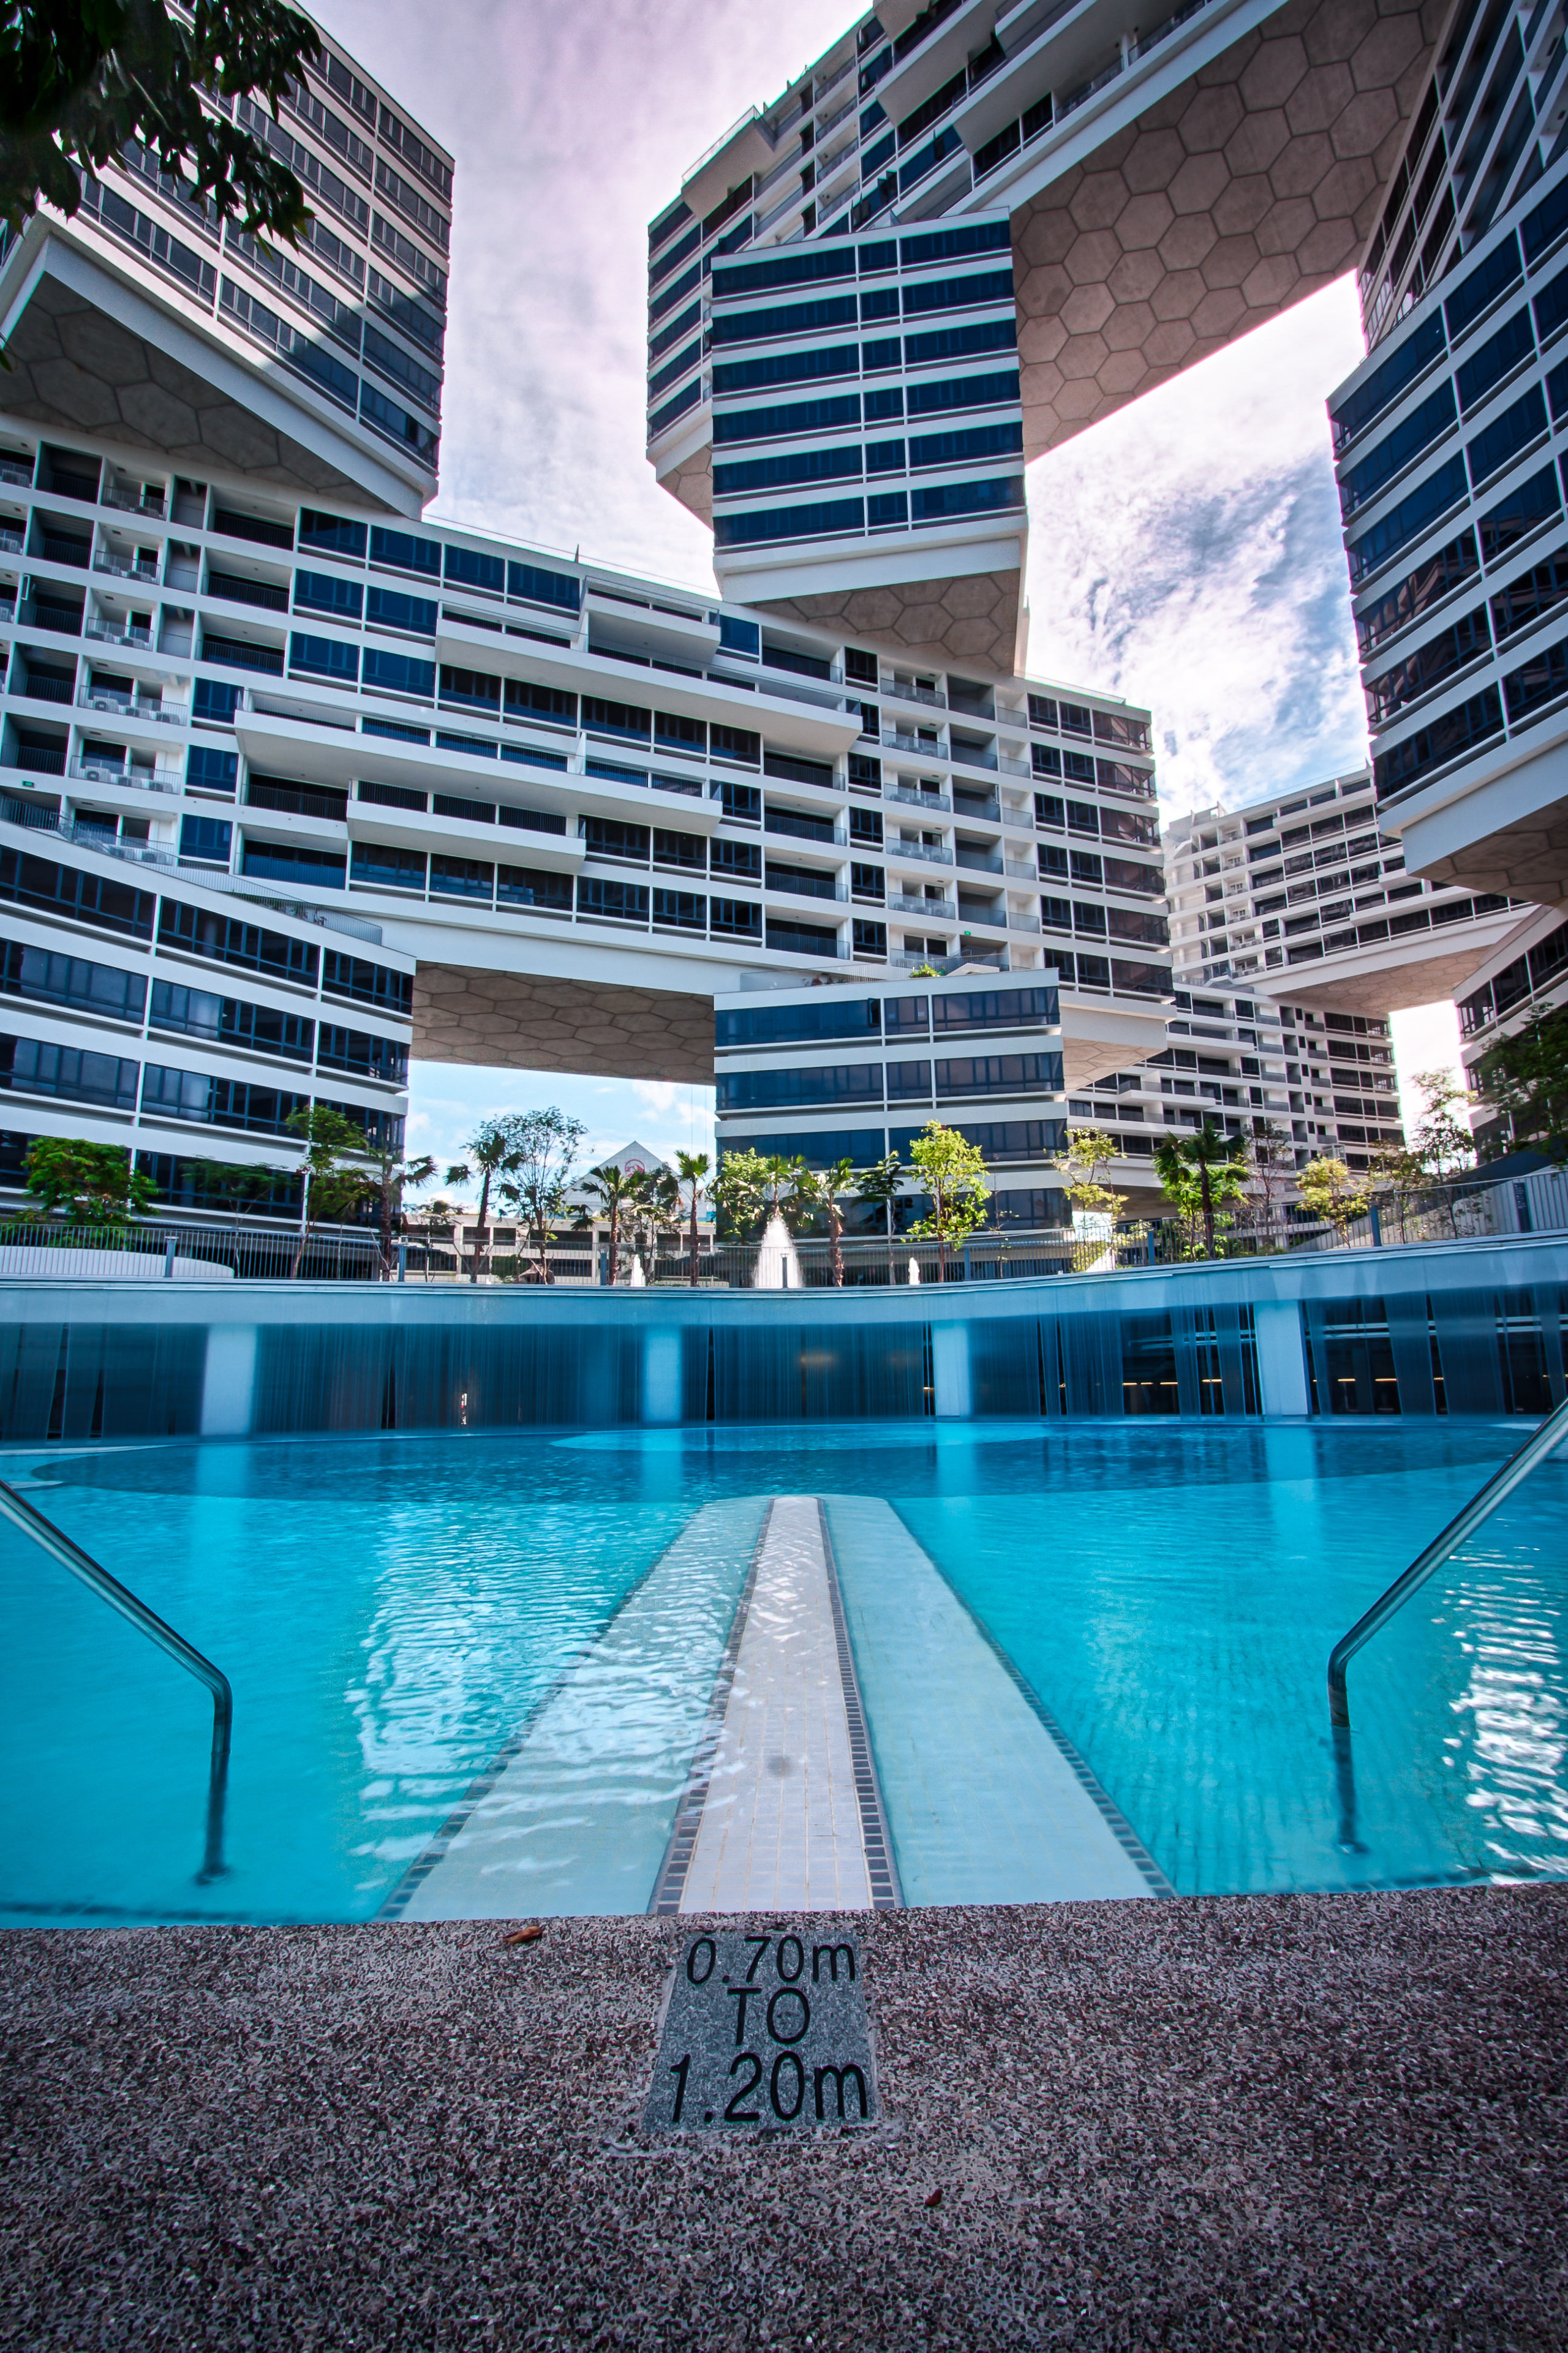 Swimming pool at The Interlace apartment, Singapore architecture, building, condominium, corporate headquarters, daytime, hotel, leisure, leisure centre, metropolitan area, mixed use, property, real estate, reflection, resort, swimming pool, vacation, water, teal